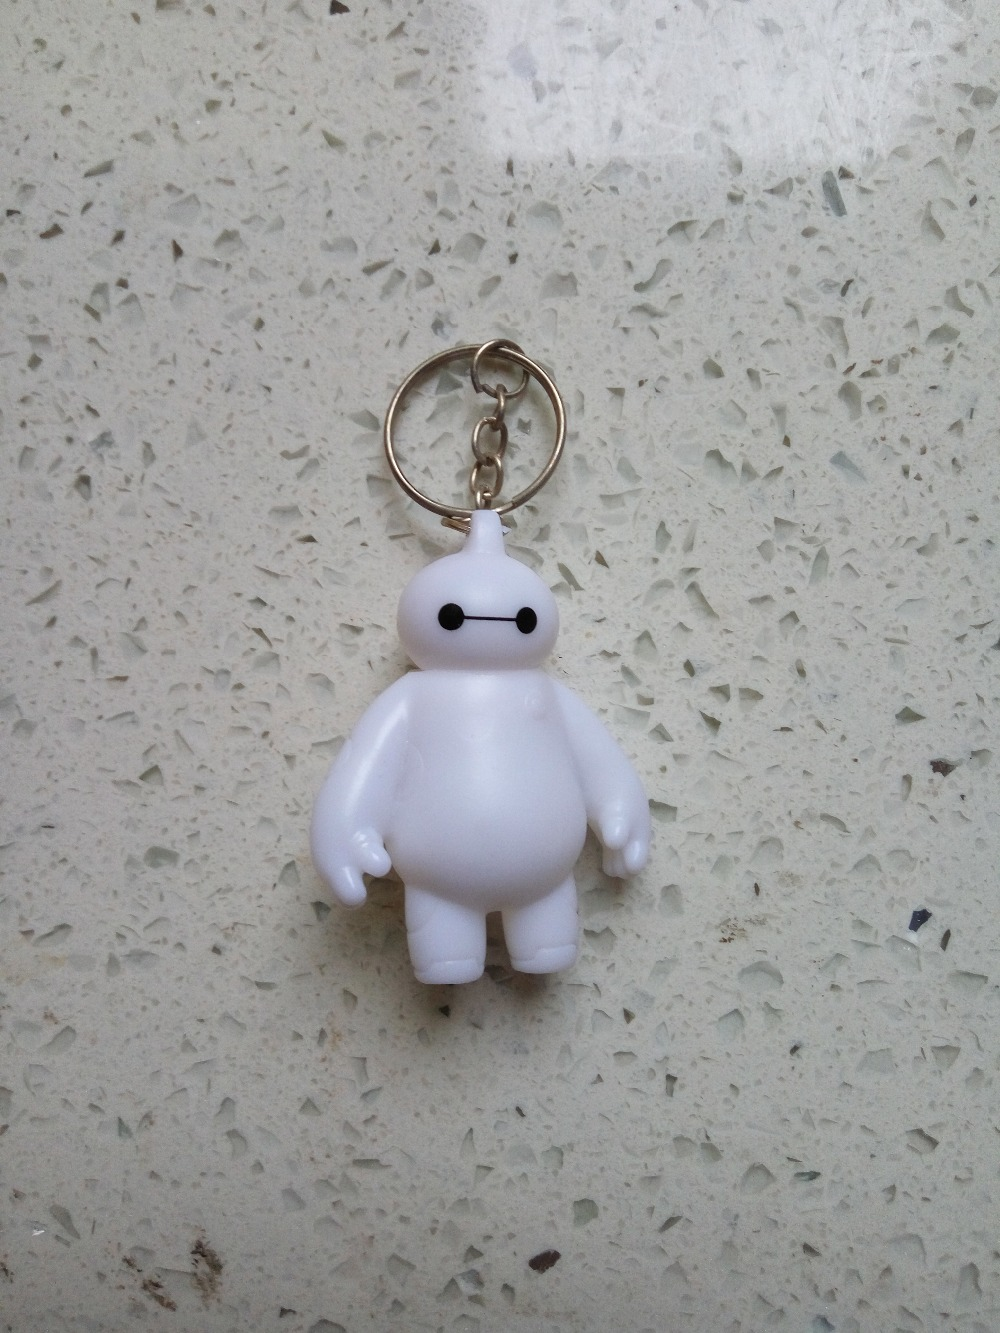 20pcs/<font><b>lot</b></font> <font><b>Big</b></font> <font><b>Hero</b></font> <font><b>6</b></font> Baymax Key Chain 6cm Cute <font><b>Action</b></font> <font><b>Figure</b></font> Pendant Keychain Gift Keyring for friends